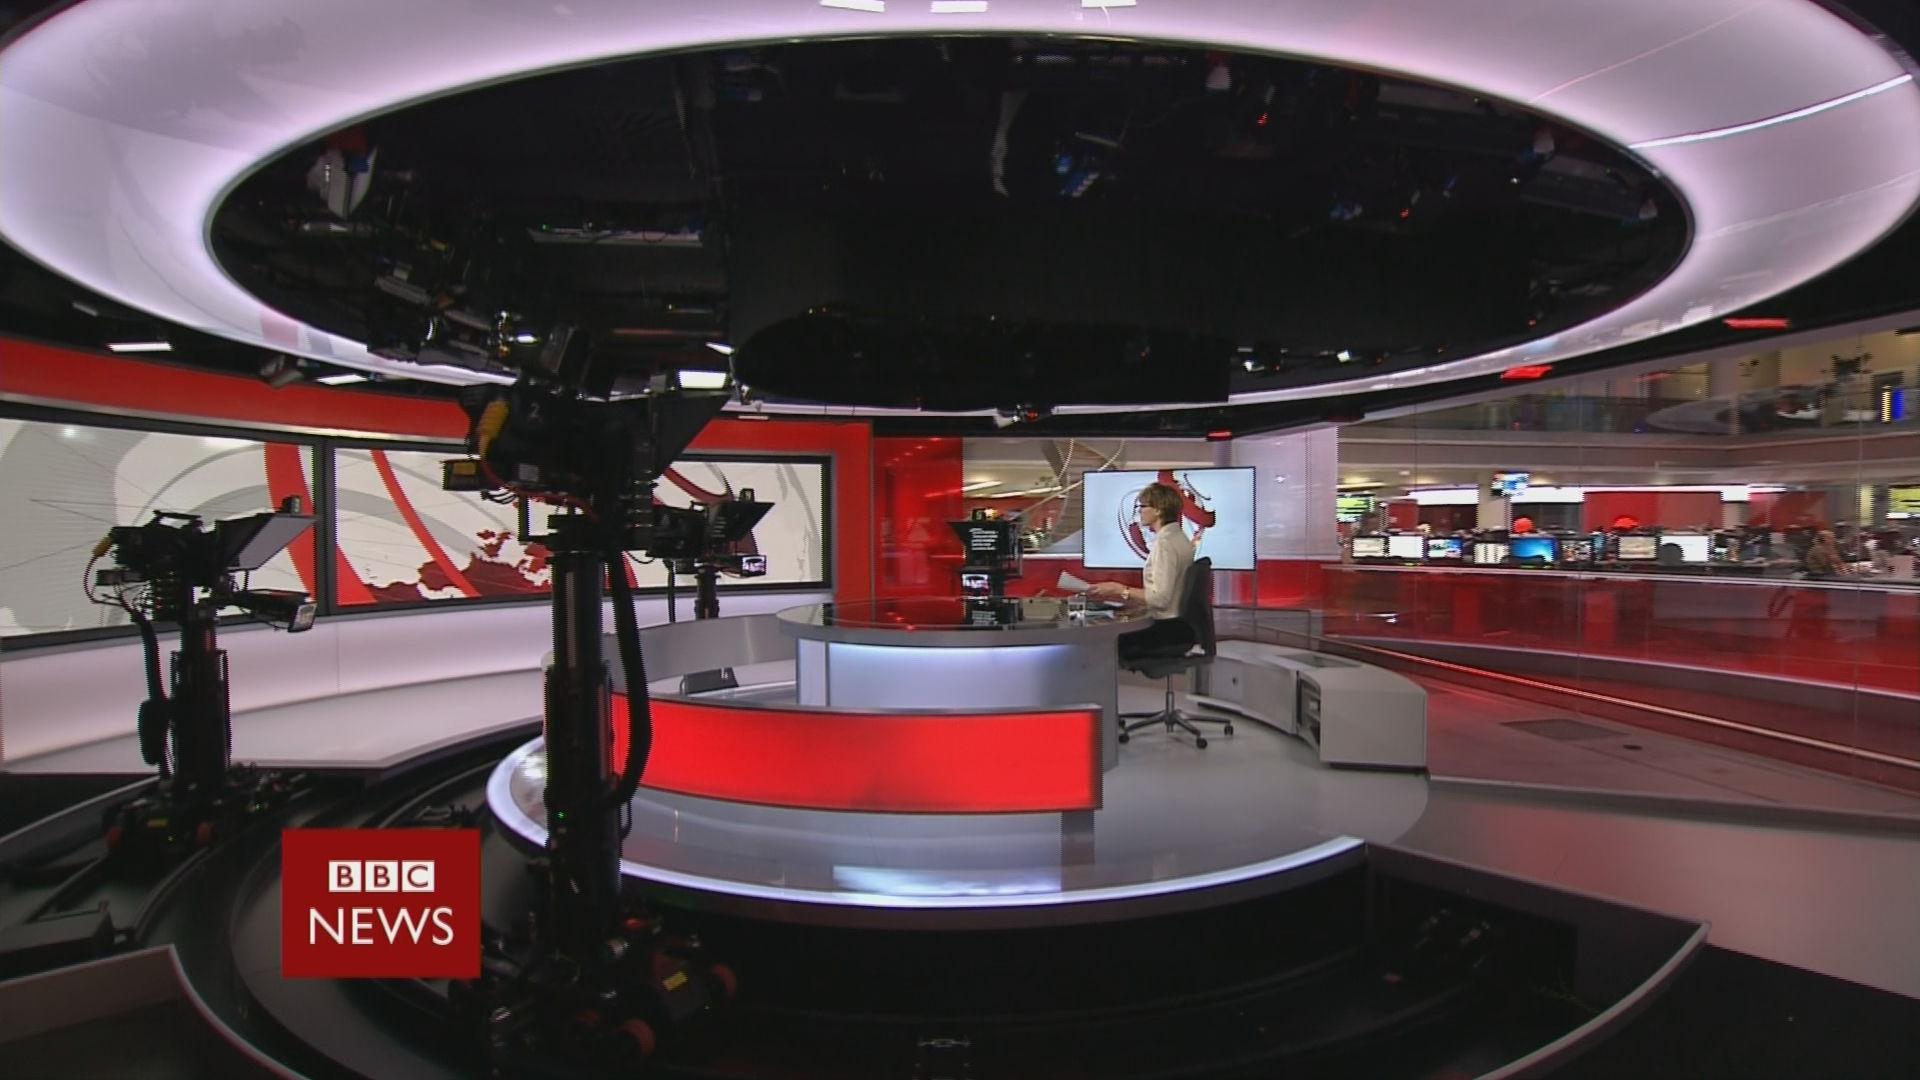 A_BBC_NEWS_Avid_10front_five